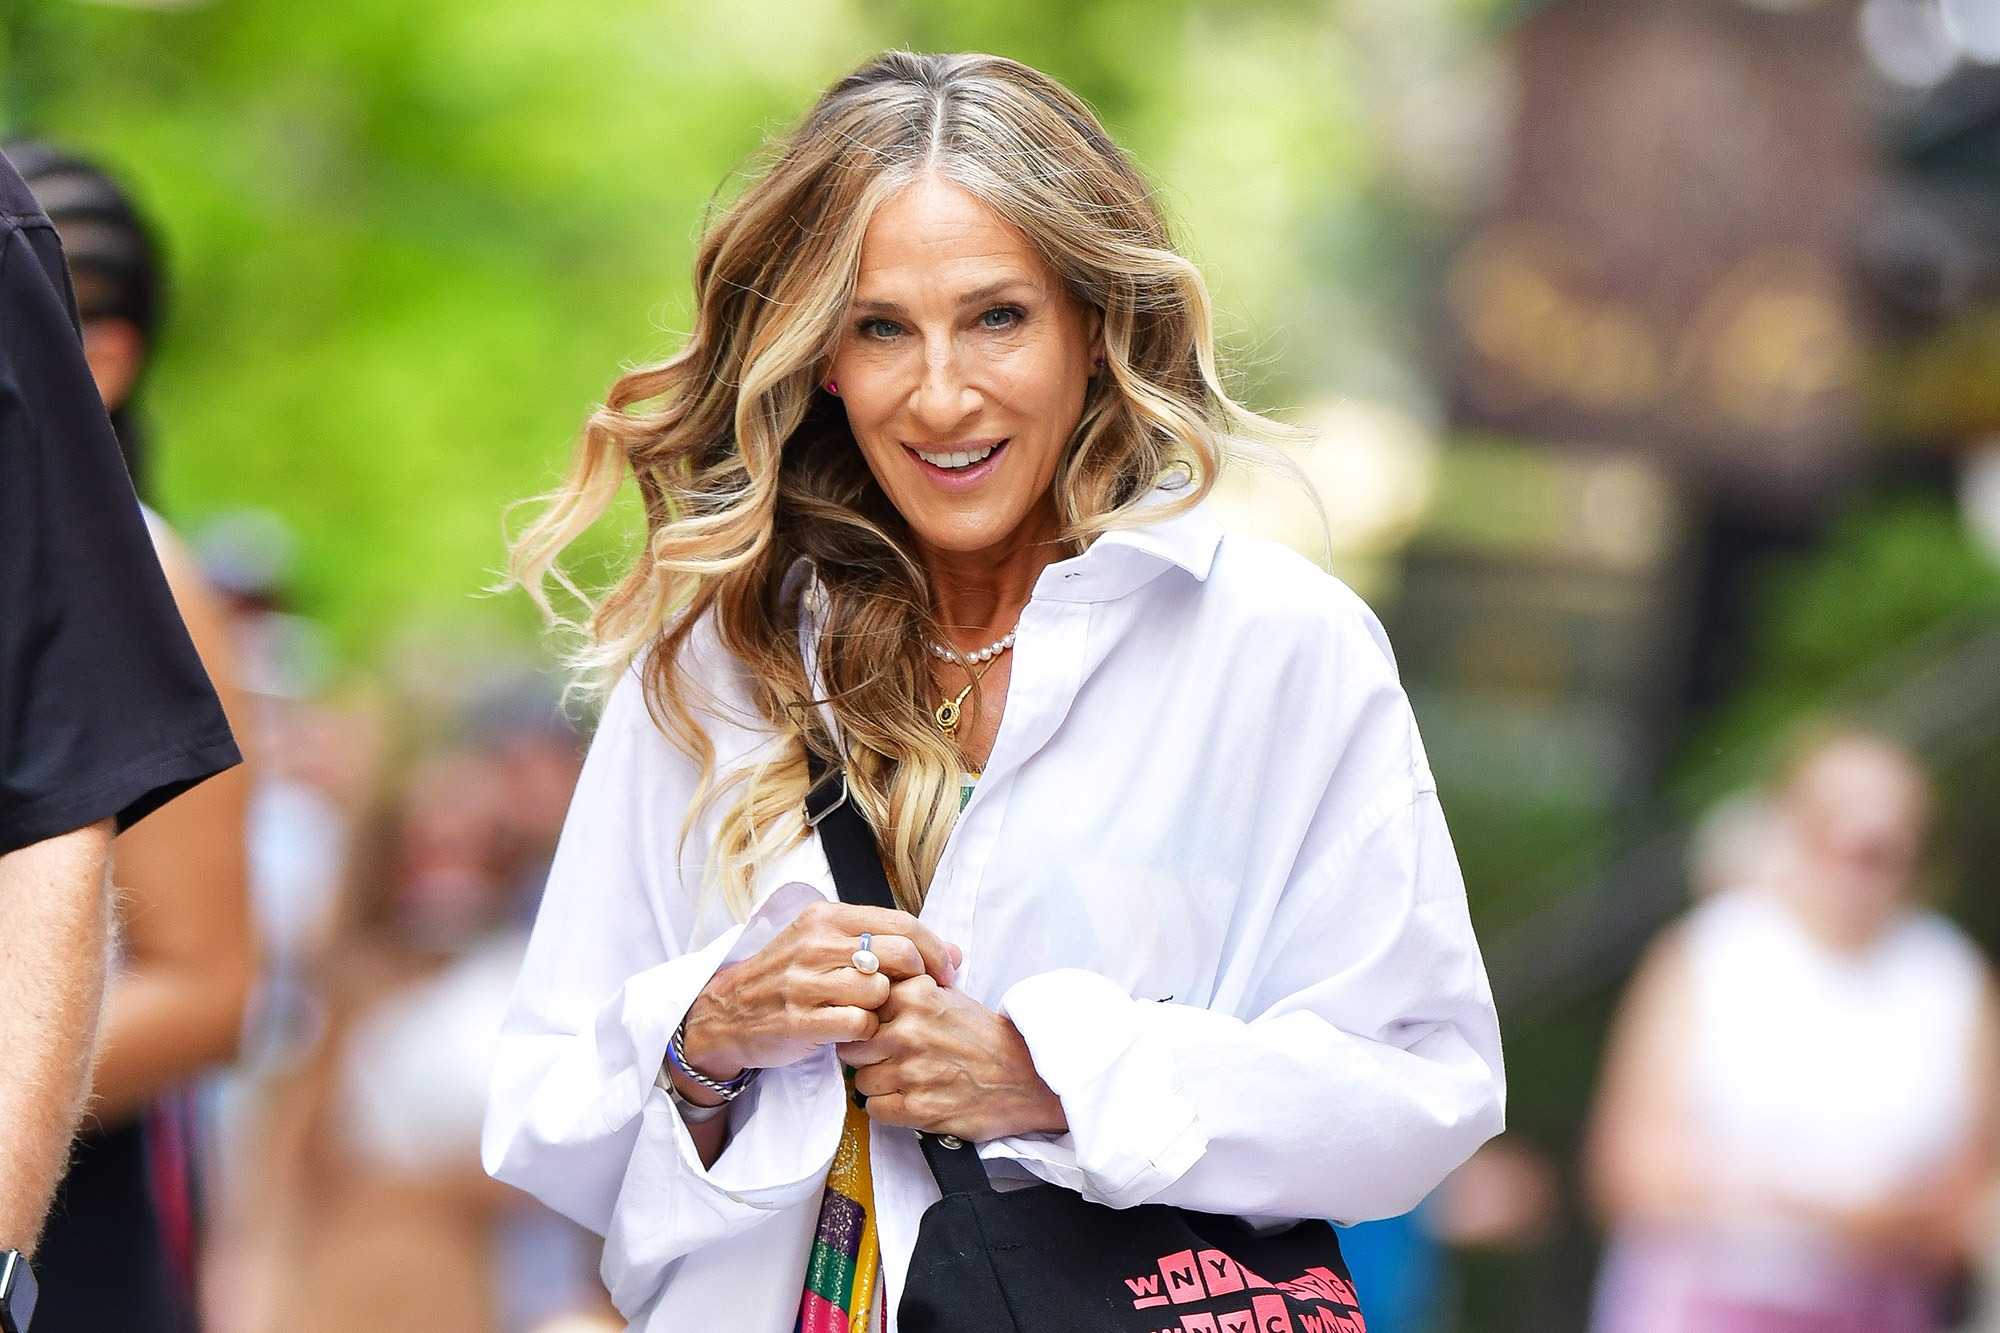 """Sarah Jessica Parker seen on the set of """"And Just Like That..."""" the follow up series to """"Sex and the City"""" in NoHo on July 15, 2021 in New York City"""